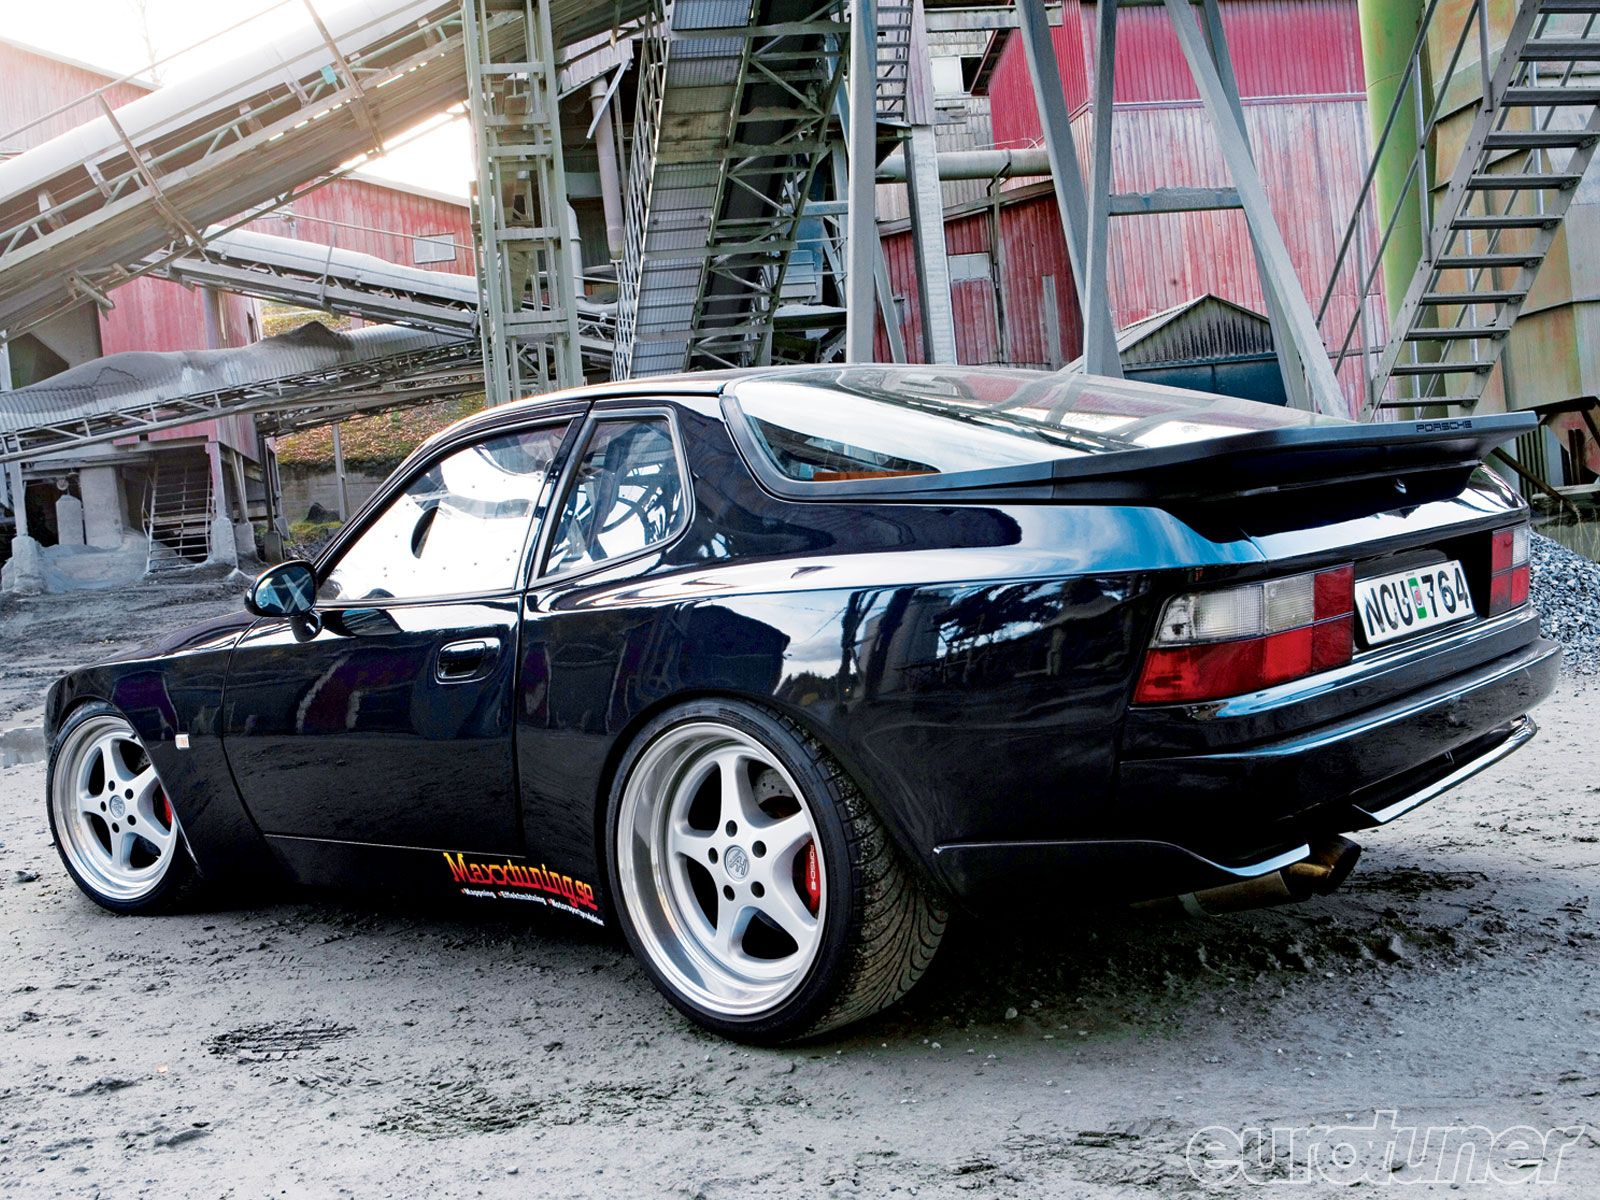 1985 944 porsche i will have one of these one day. | cars & trucks